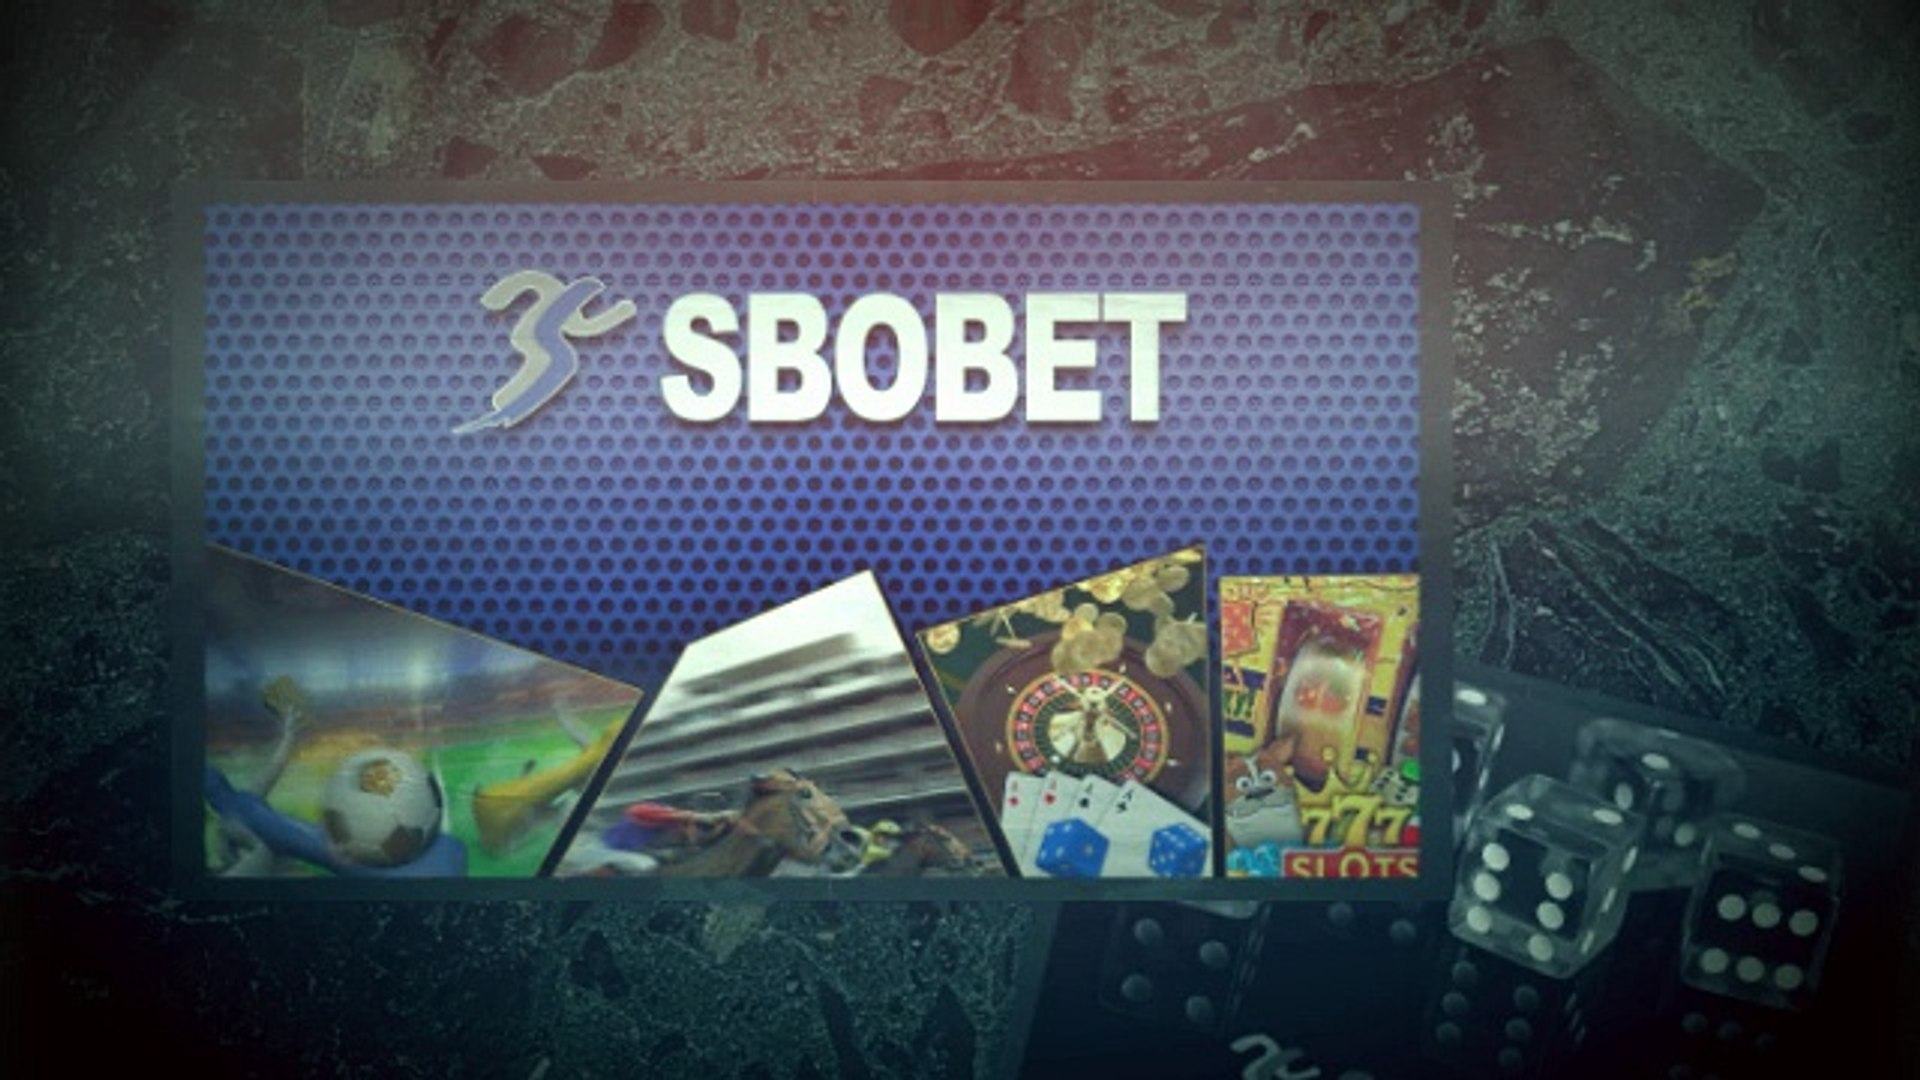 The Exciting Sbobet Football Online game